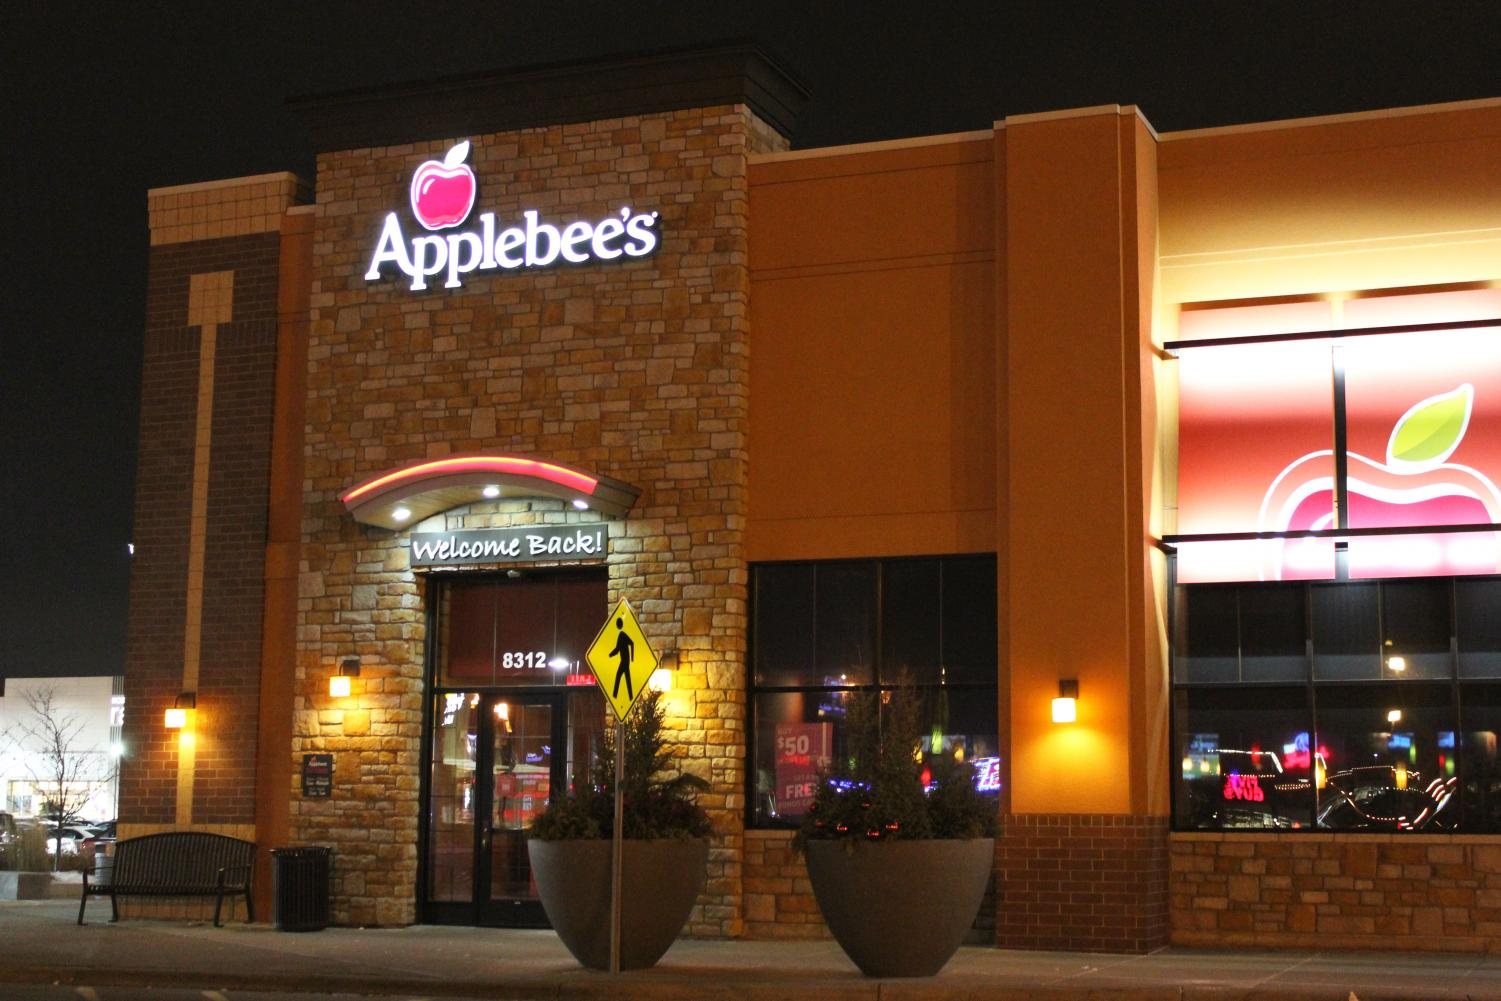 The band held a fundraiser in December at the Knollwood Mall Applebee's to raise money for their trip to Hawaii. The band will hold similar fundraisers through January at locations such as Blaze Pizza, Park Yogurt, and Chipotle.